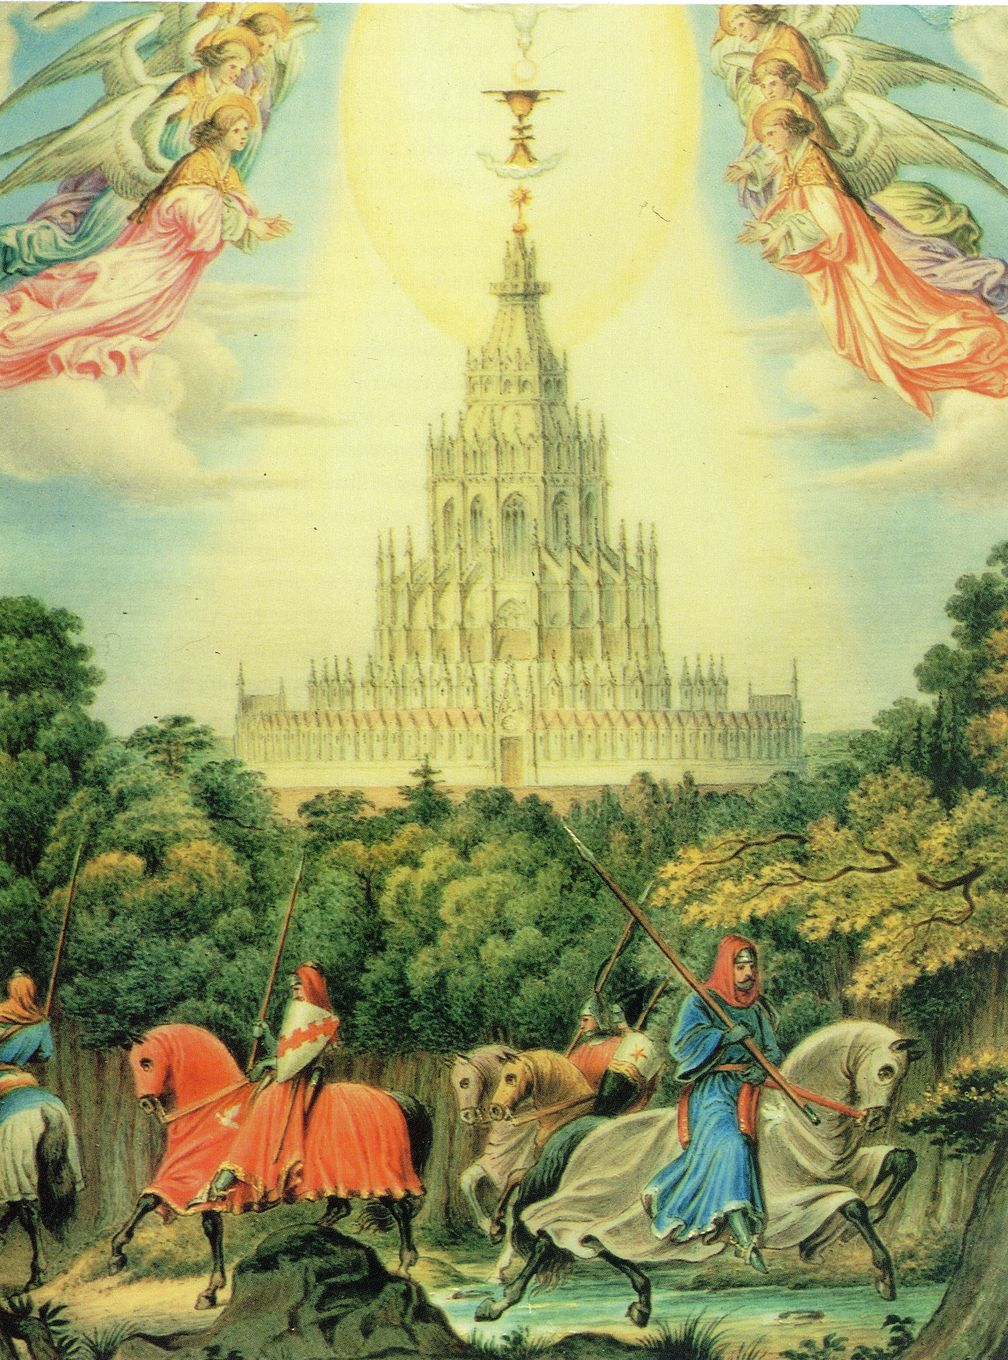 Image: Grail Castle in the midst of a forest. Cover of King Ludwig's Diary